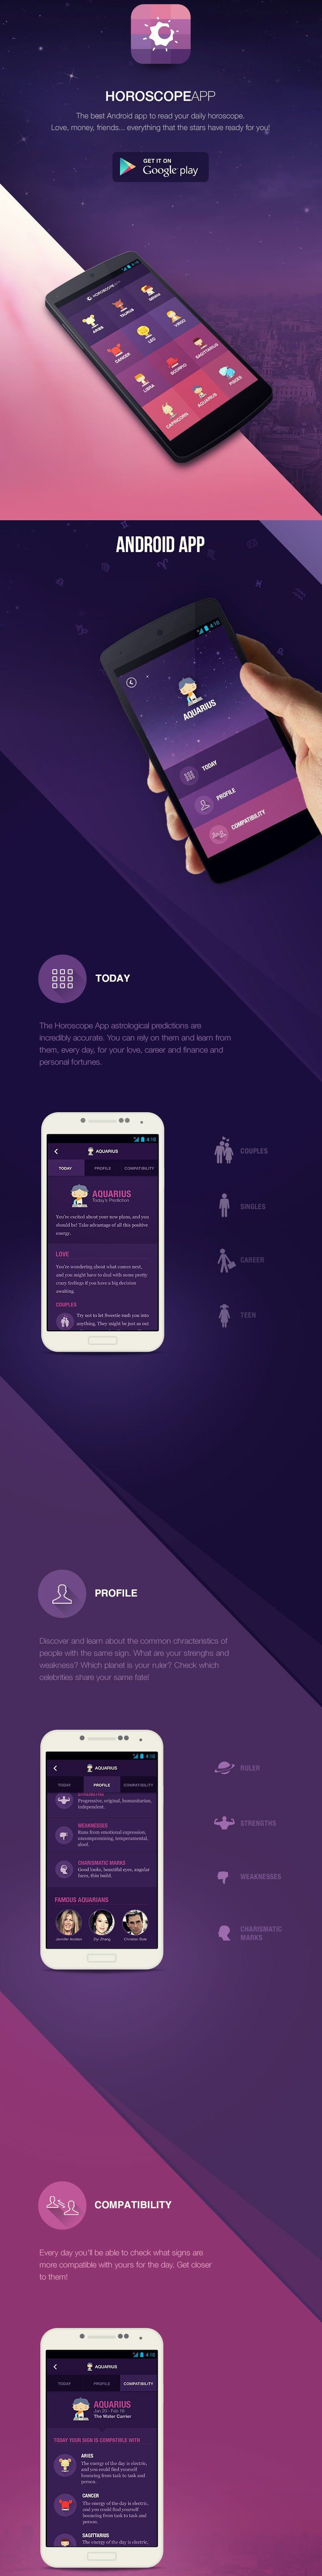 The Horoscope App android smartphone flat design